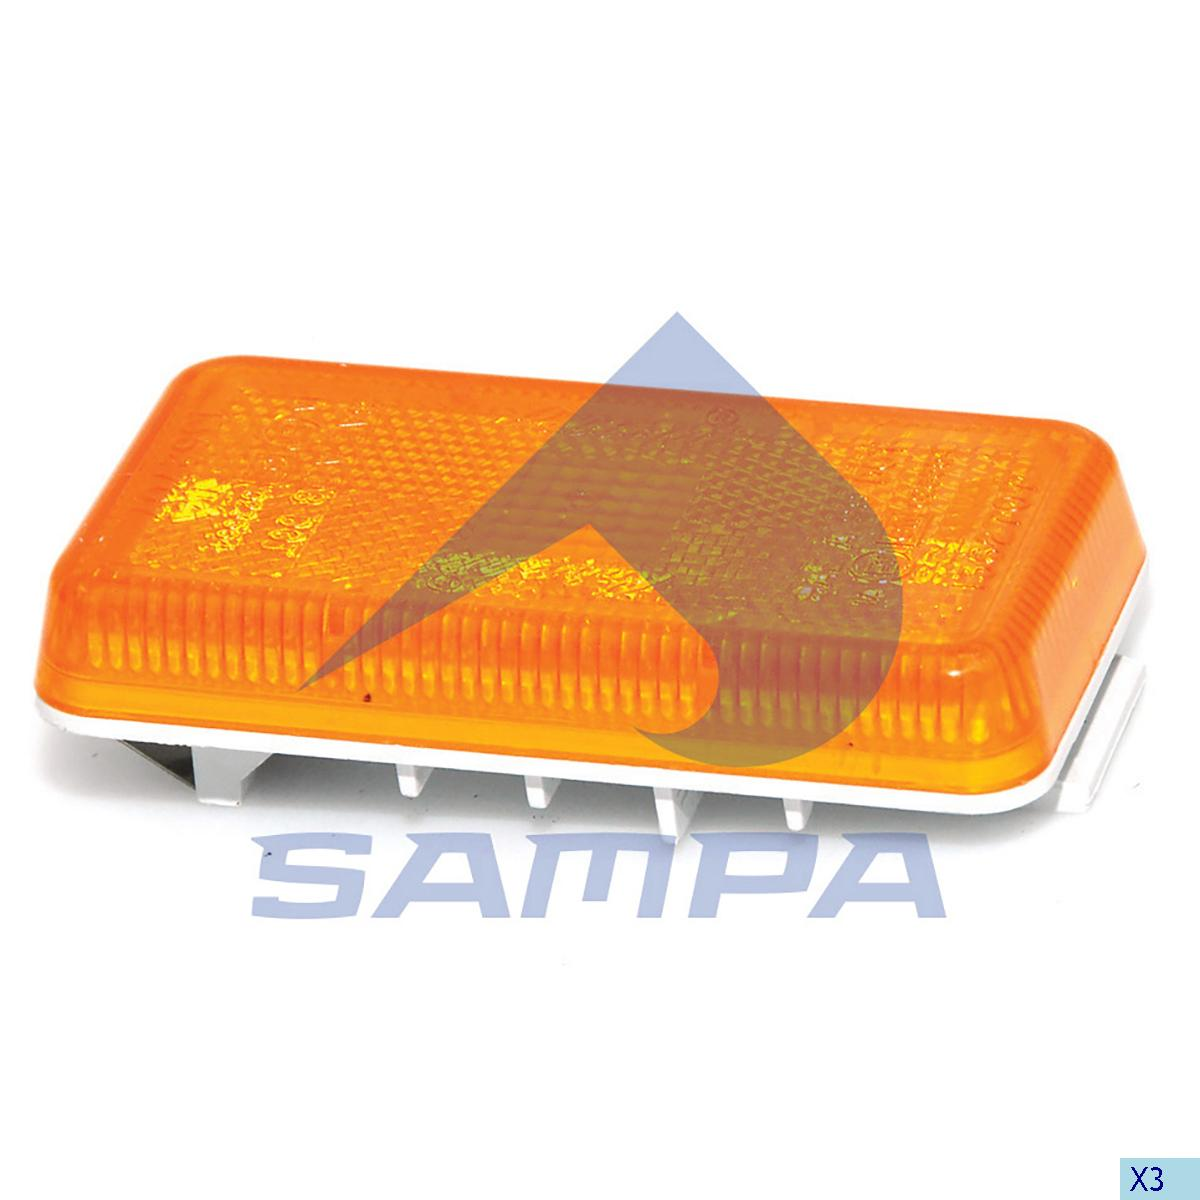 Step Signal Lamp, Scania, Electric System